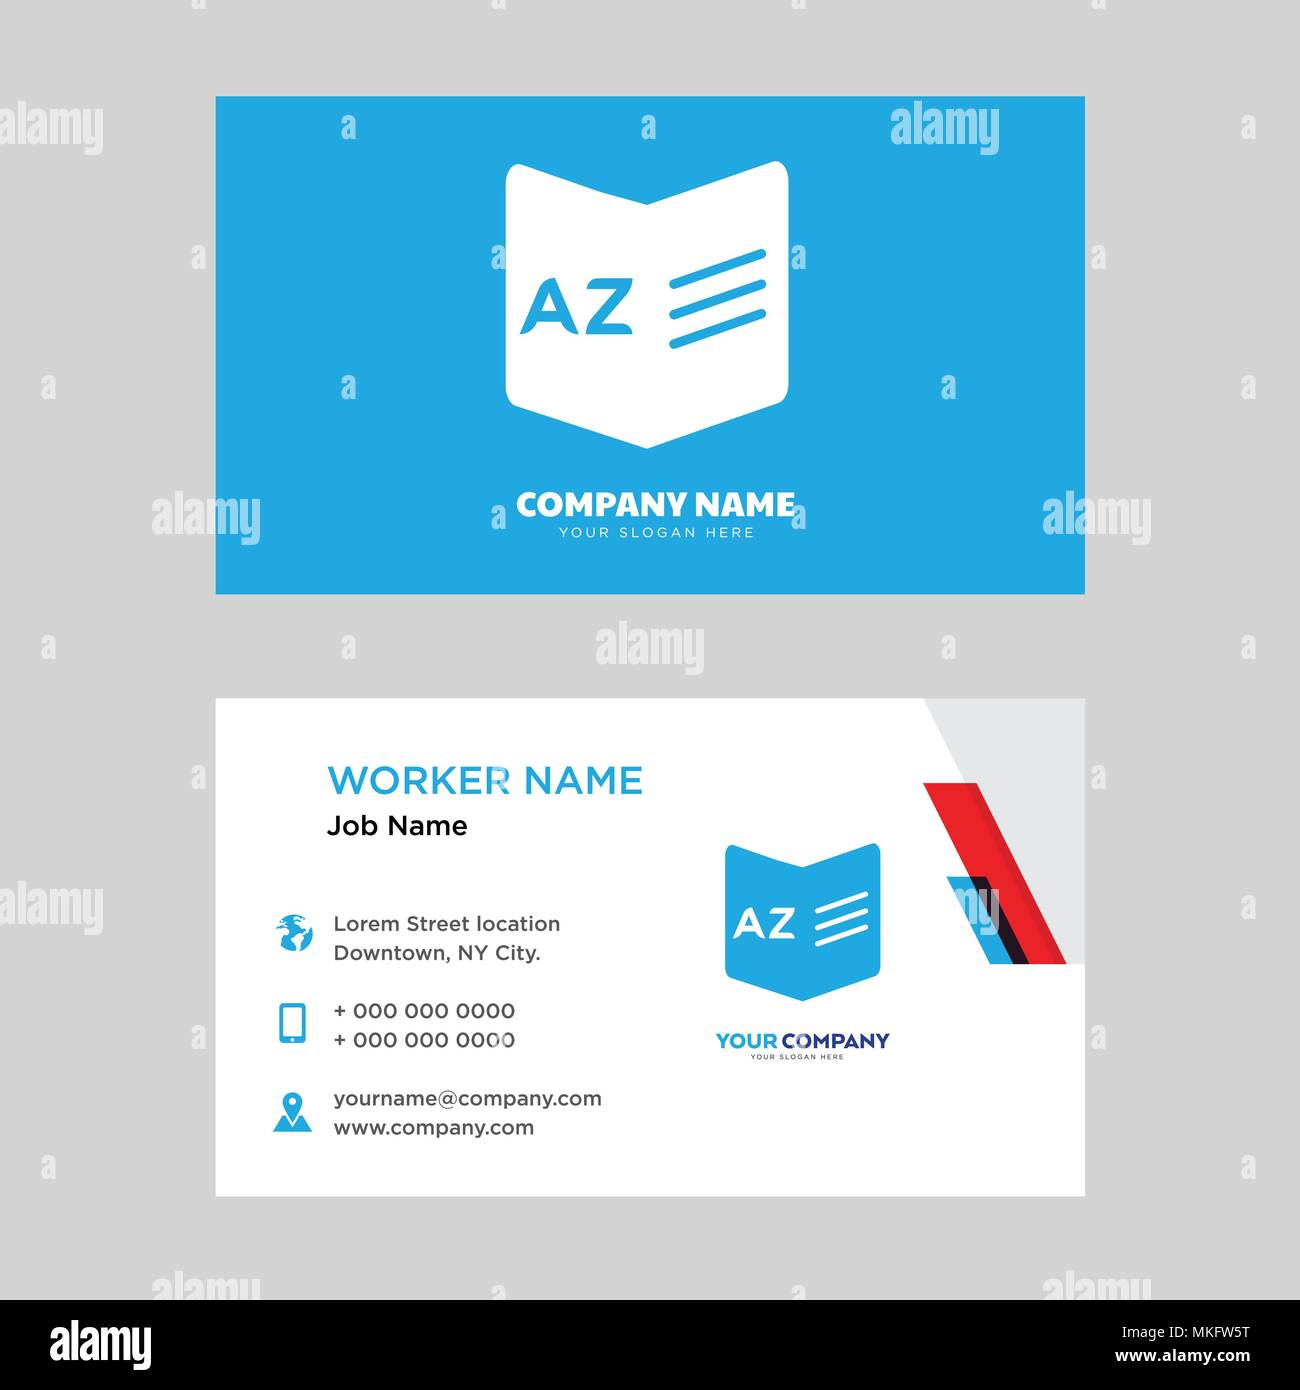 dictionary business card design template visiting for your company modern horizontal identity card vector